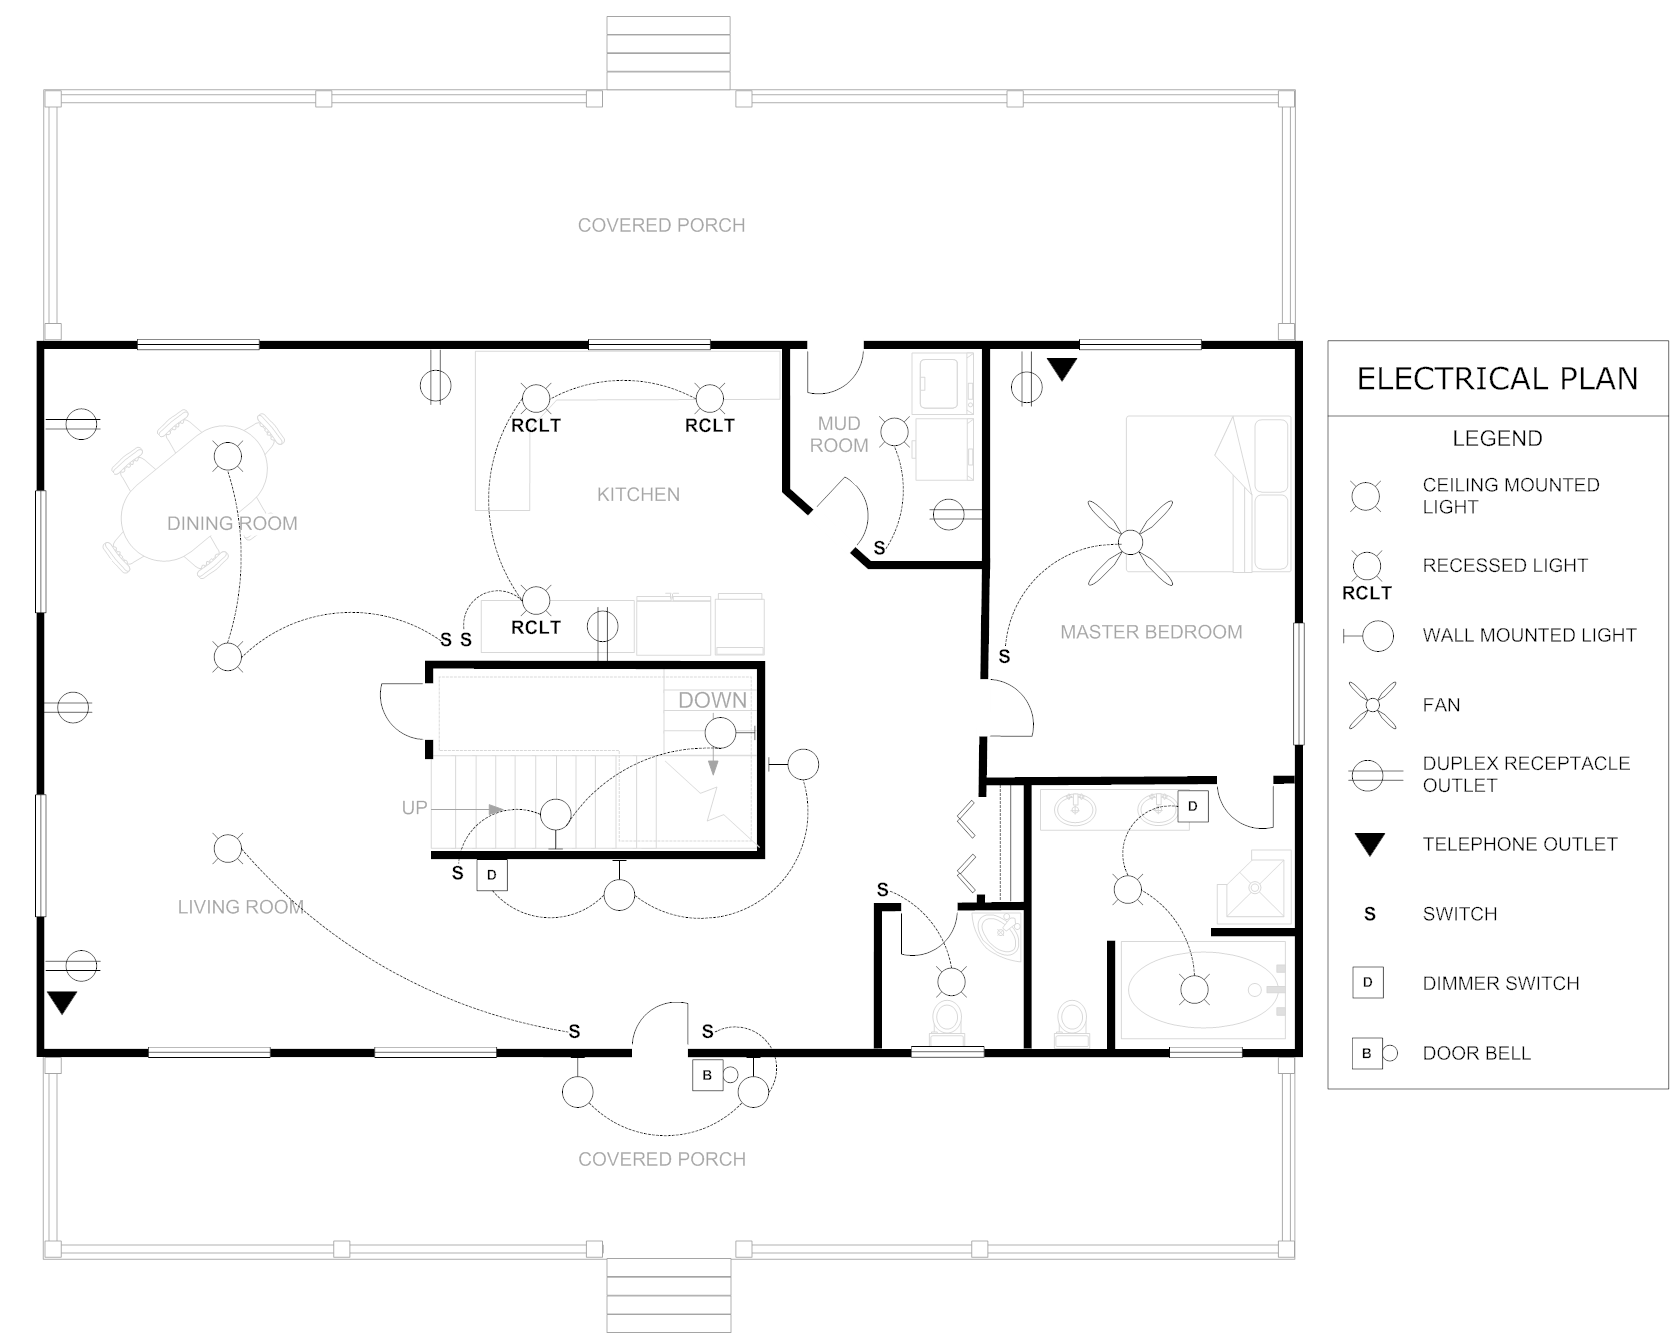 Floor Plan Example Electrical House - House Plans | #42866House Plans